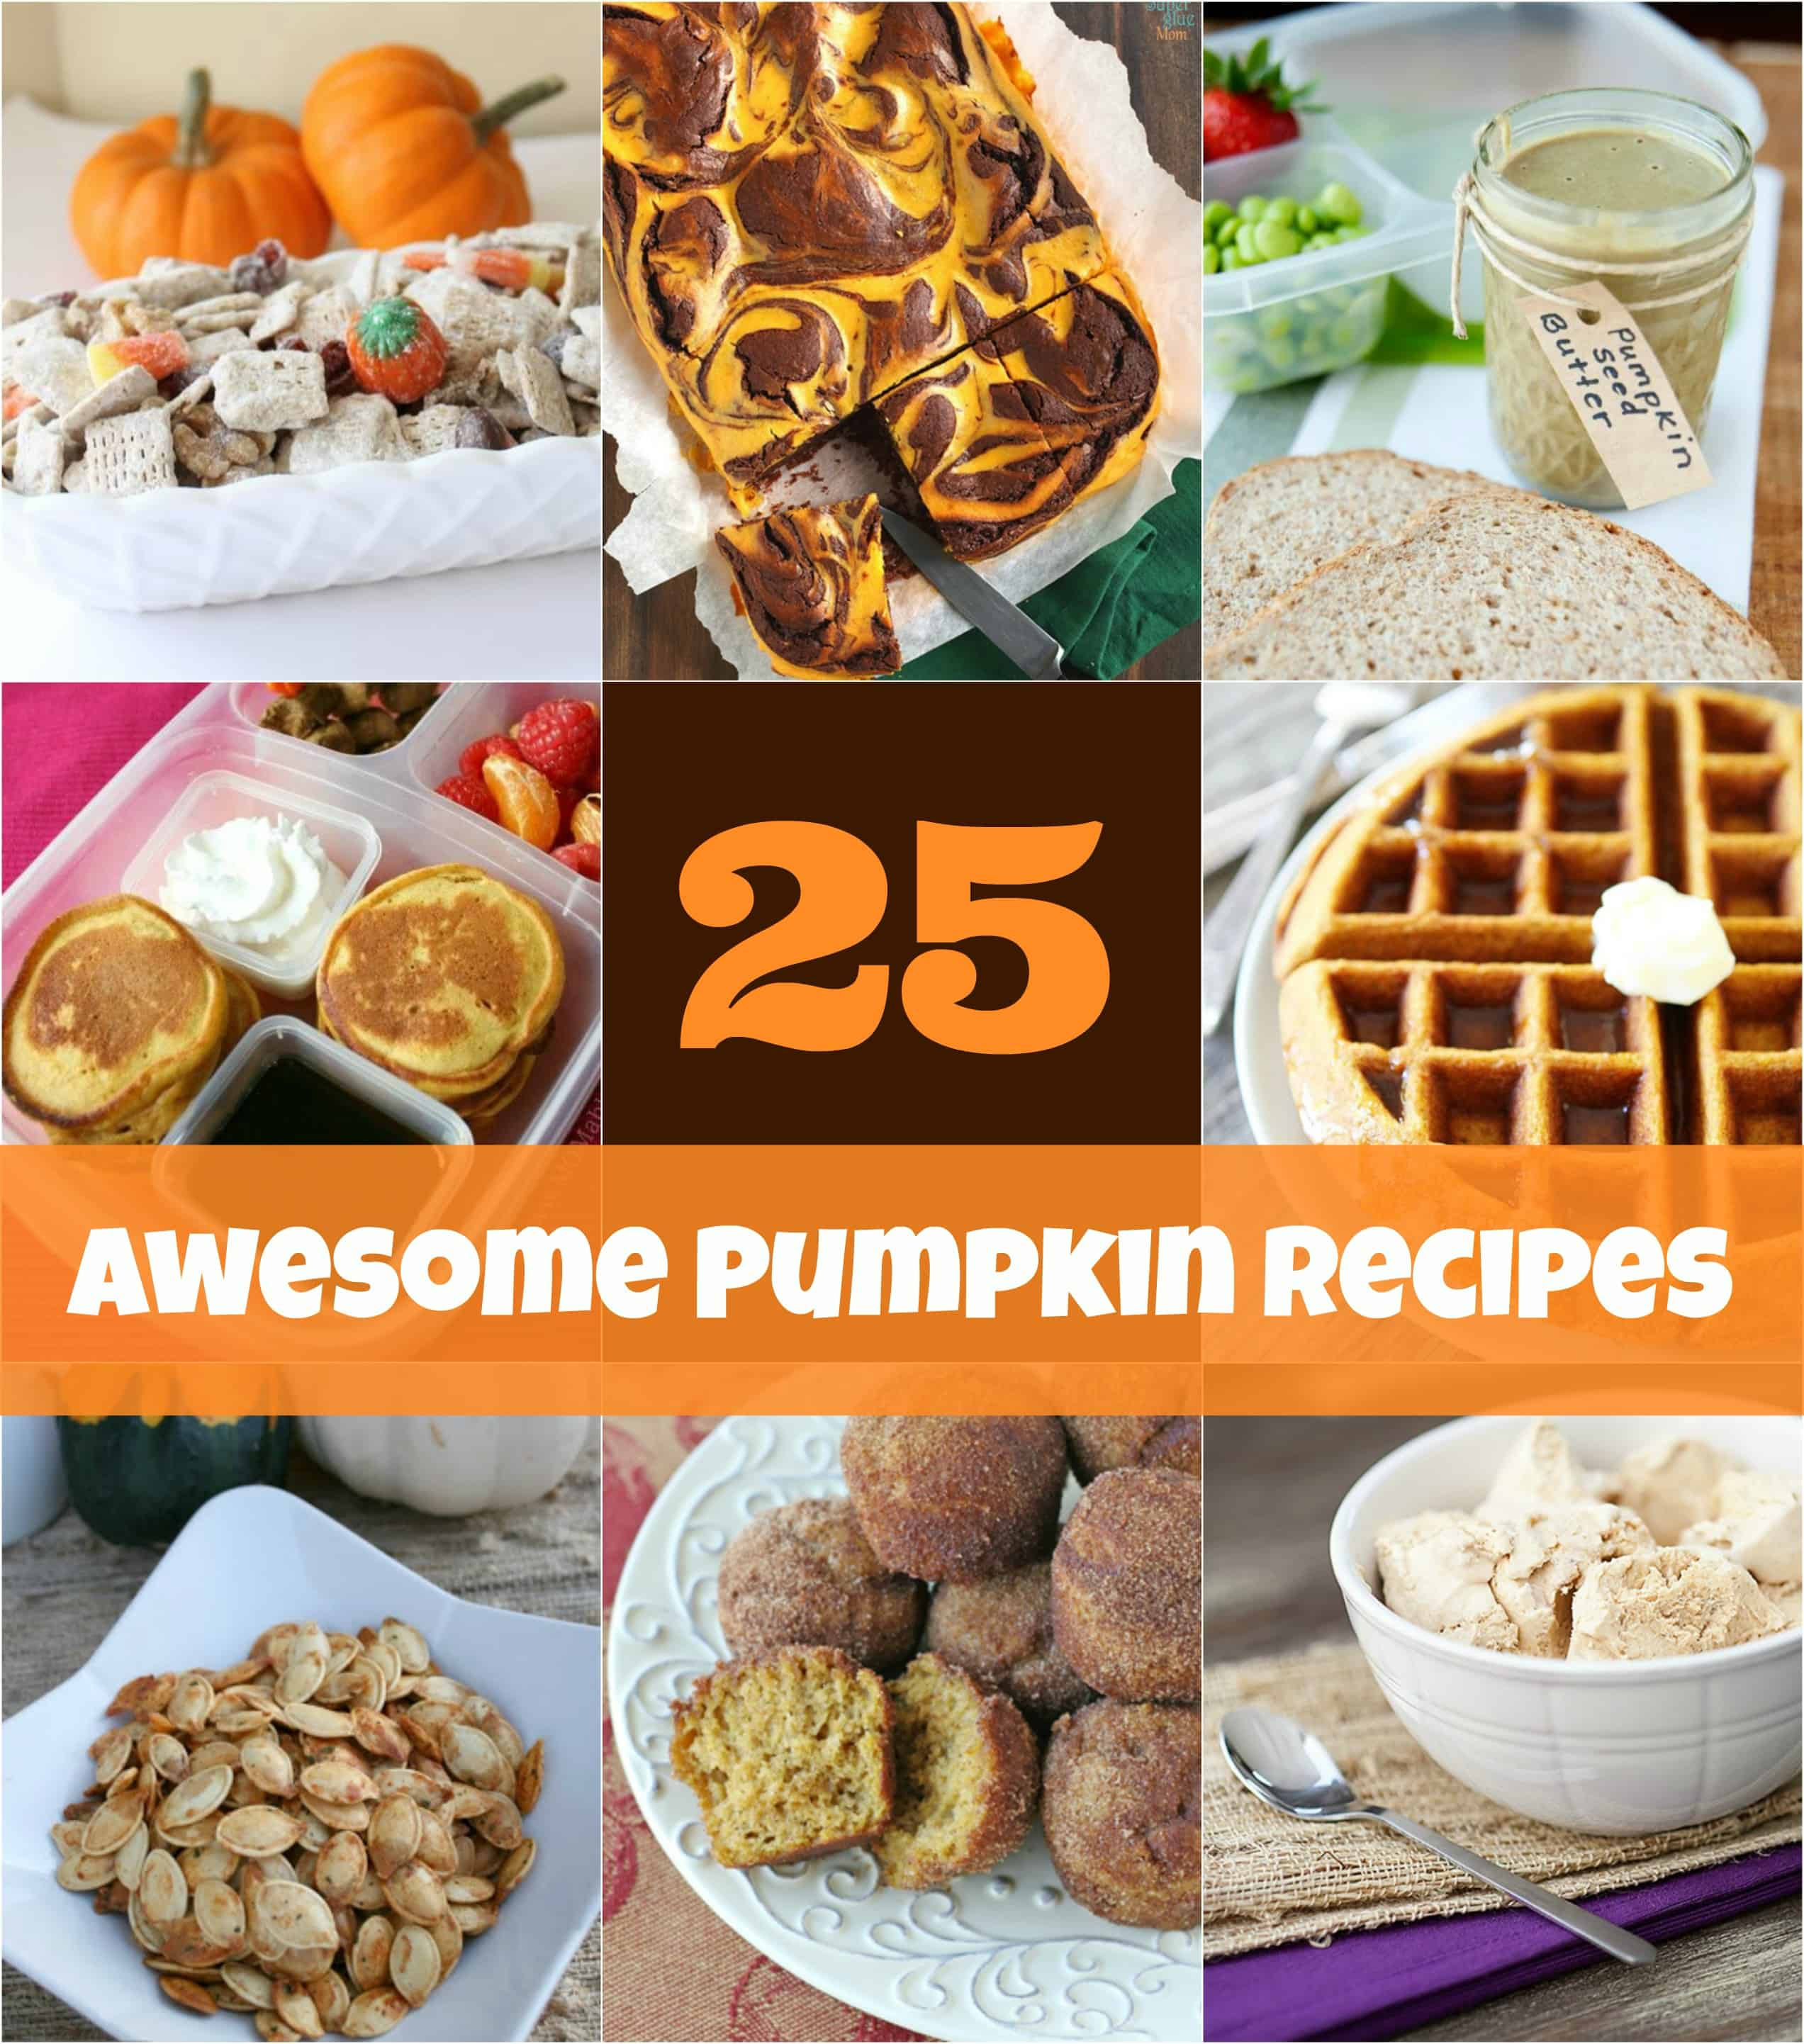 25 pumpkin recipe ideas 25 awesome pumpkin recipe ideas forumfinder Gallery